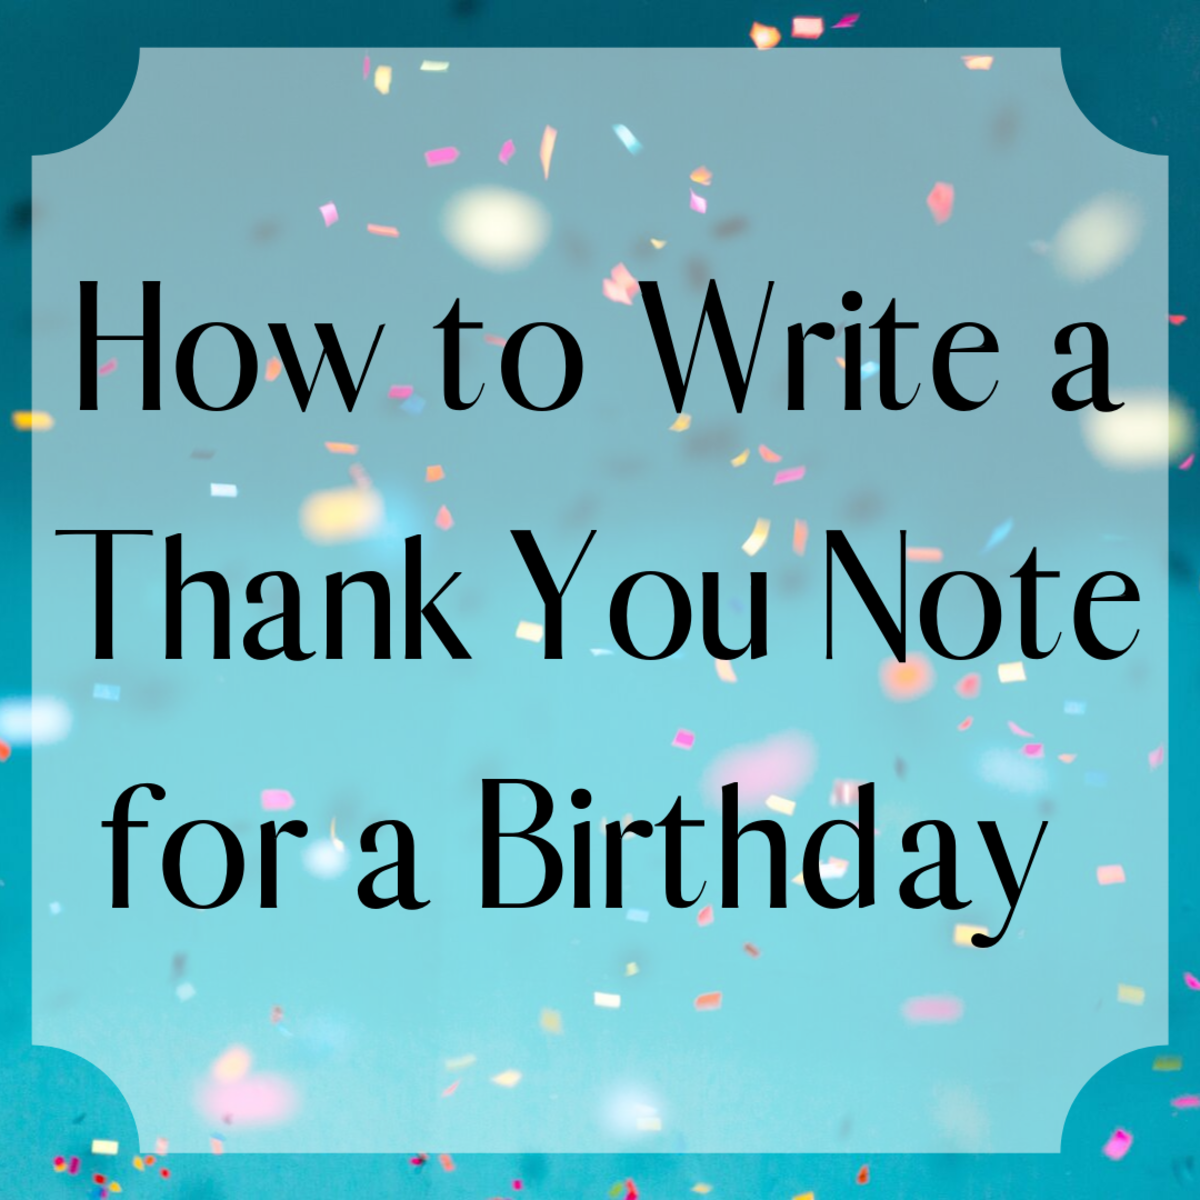 Thank You Notes For Birthday Wishes Holidappy Celebrations